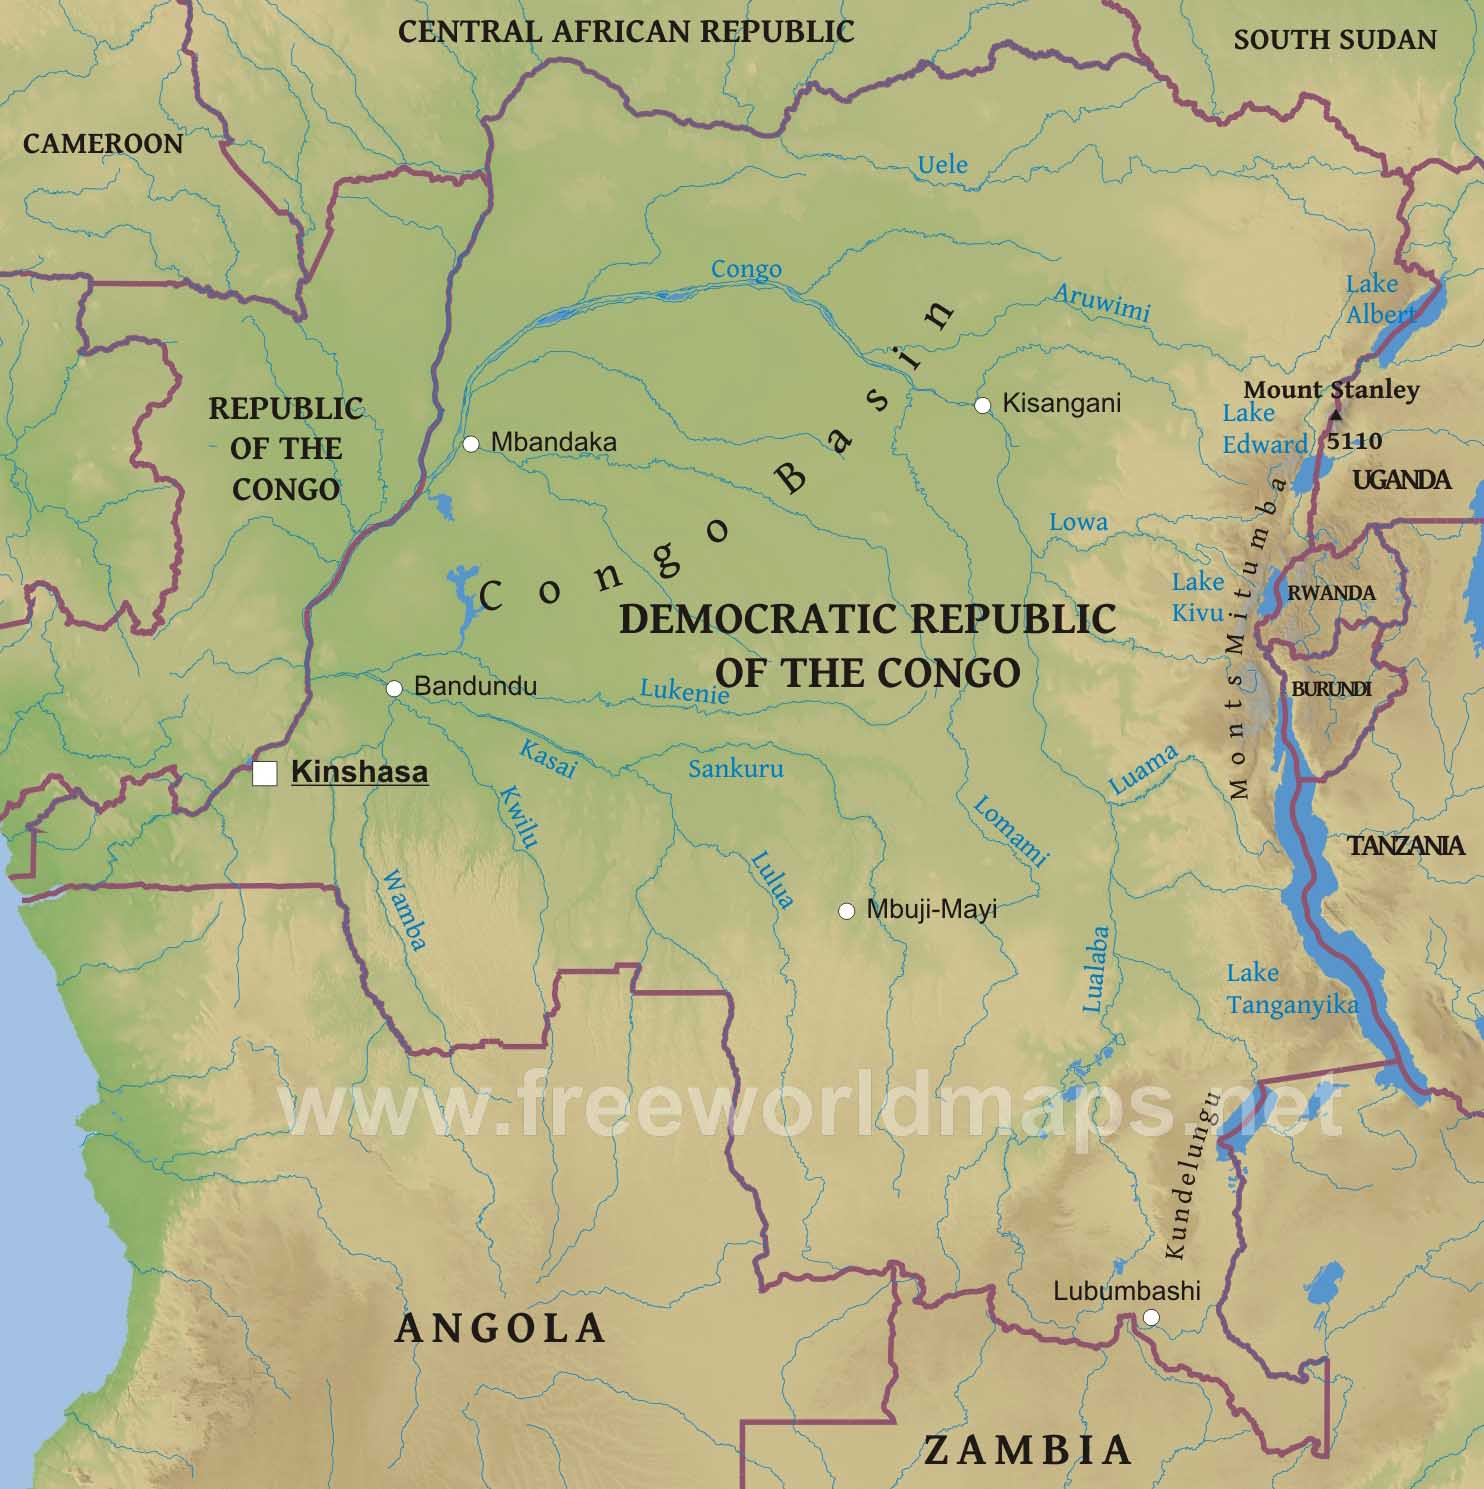 Congo Democratic Republic Physical Map on borneo map, mali map, niger map, benin map, spain map, zambia map, japan map, nigeria map, new zealand map, swaziland map, central african republic map, the philippines map, indonesia map, senegal map, haiti map, africa map, burundi map, guinea map, ghana map, bosnia map, afghanistan map, malawi map, angola map, rwanda map, gabon map, cameroon map, madagascar map, eritrea map, algeria map, burkina faso map,